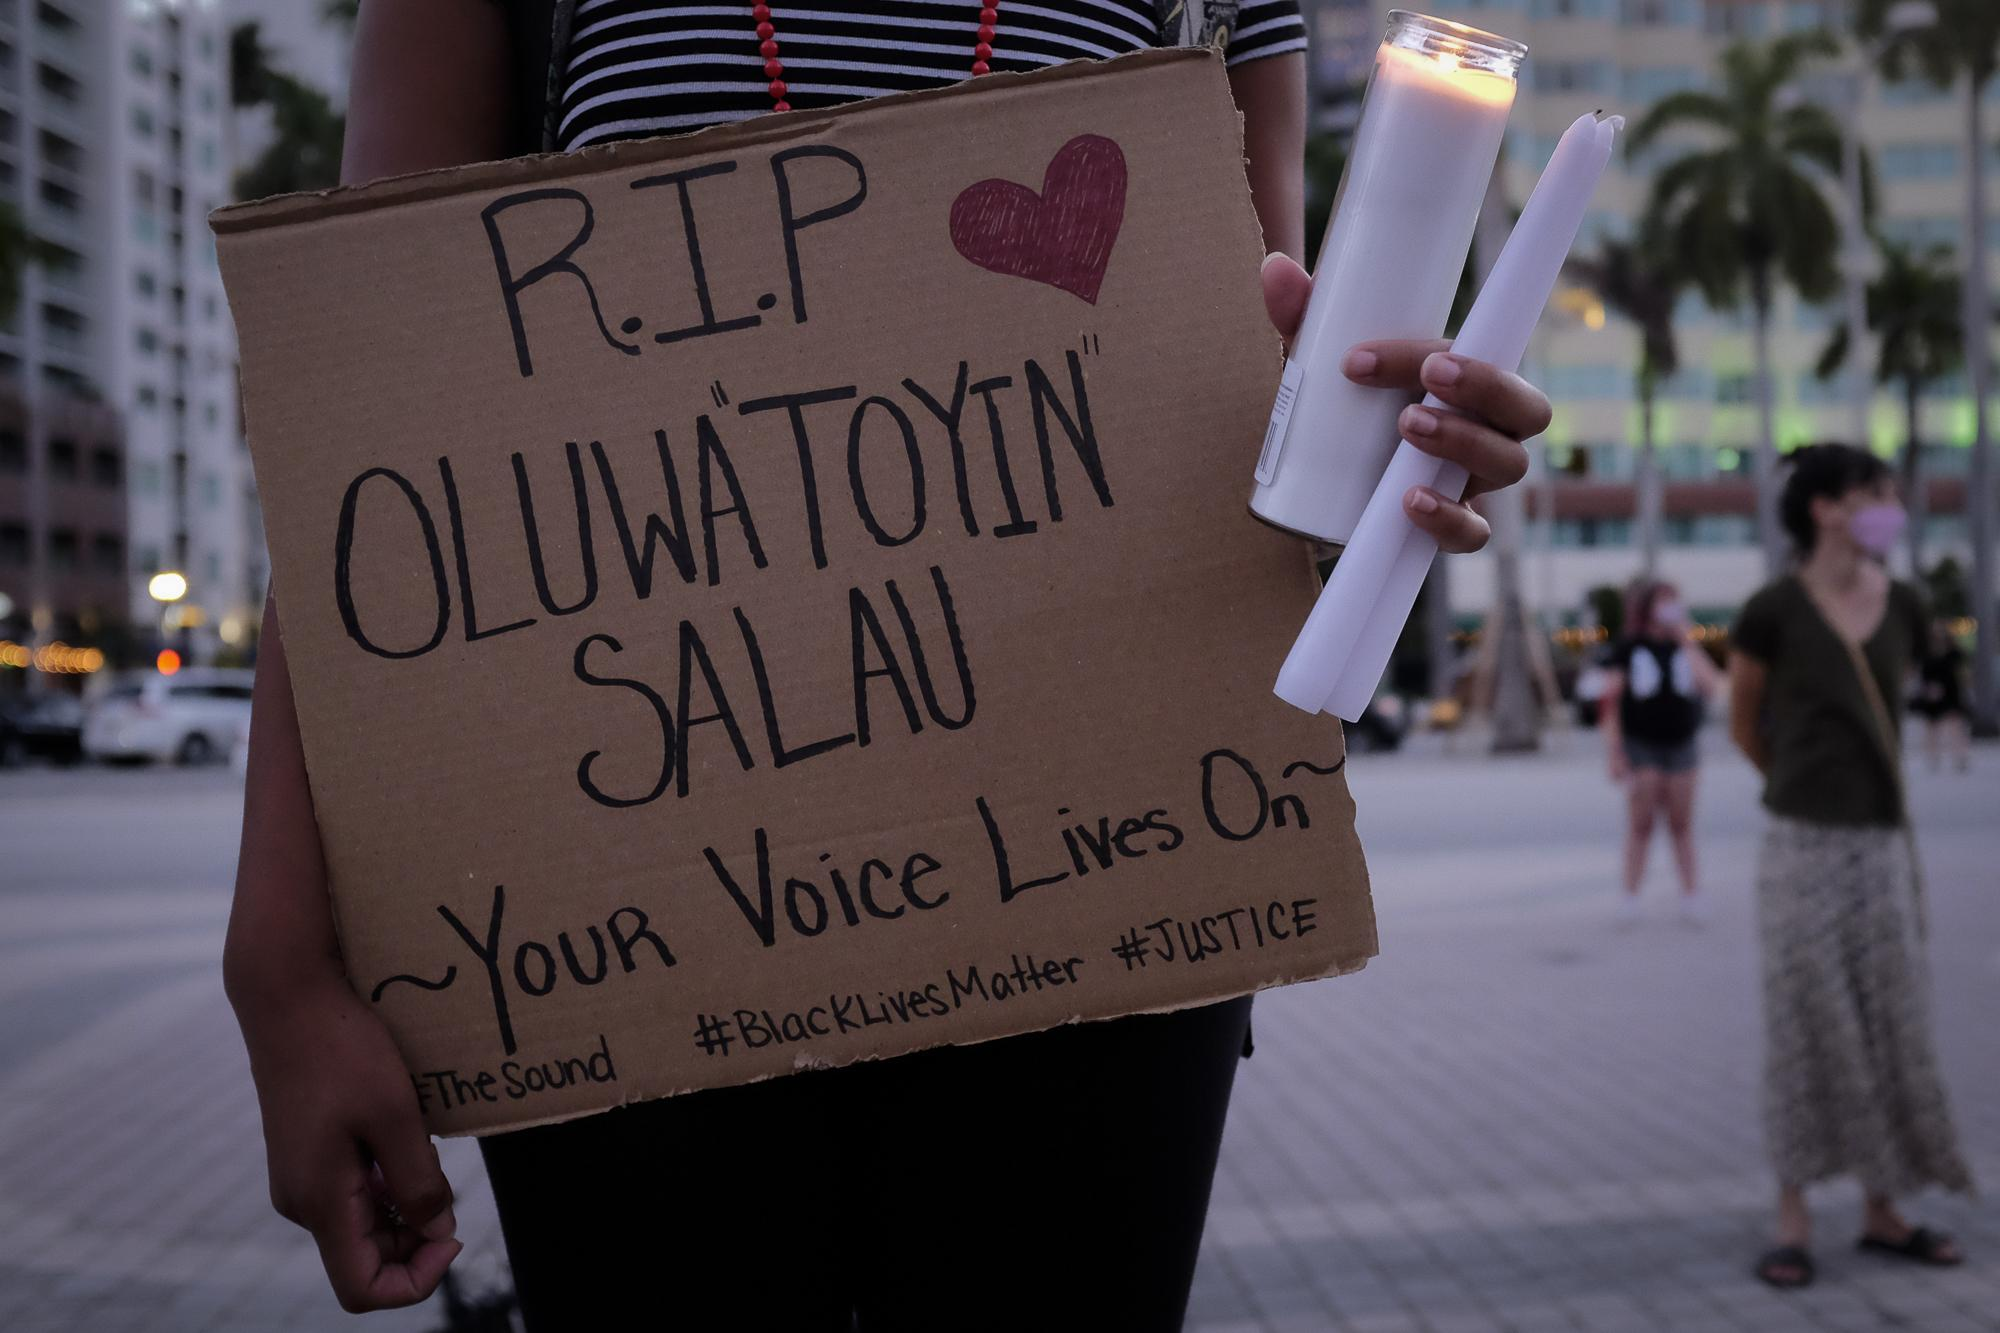 A woman holds a sign and candles as she attends a vigil for slain black activist Oluwatoyin Salau, in Downtown Miami, Florida, U.S., June 16, 2020. REUTERS/Marco Bello